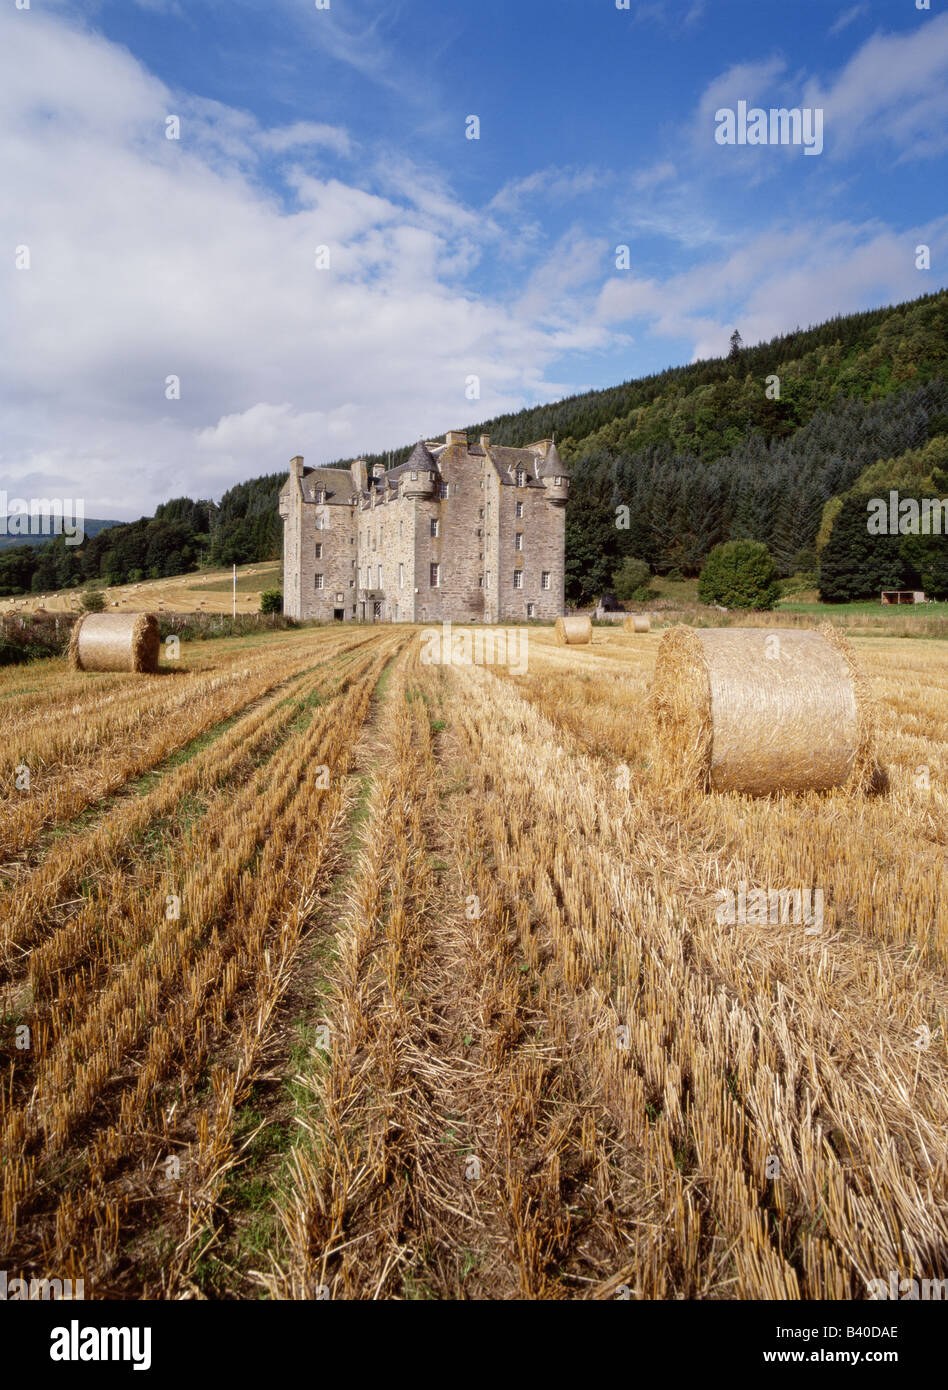 dh  MENZIES CASTLE PERTHSHIRE Highlander clan laird residences castle home field and harvested bales - Stock Image